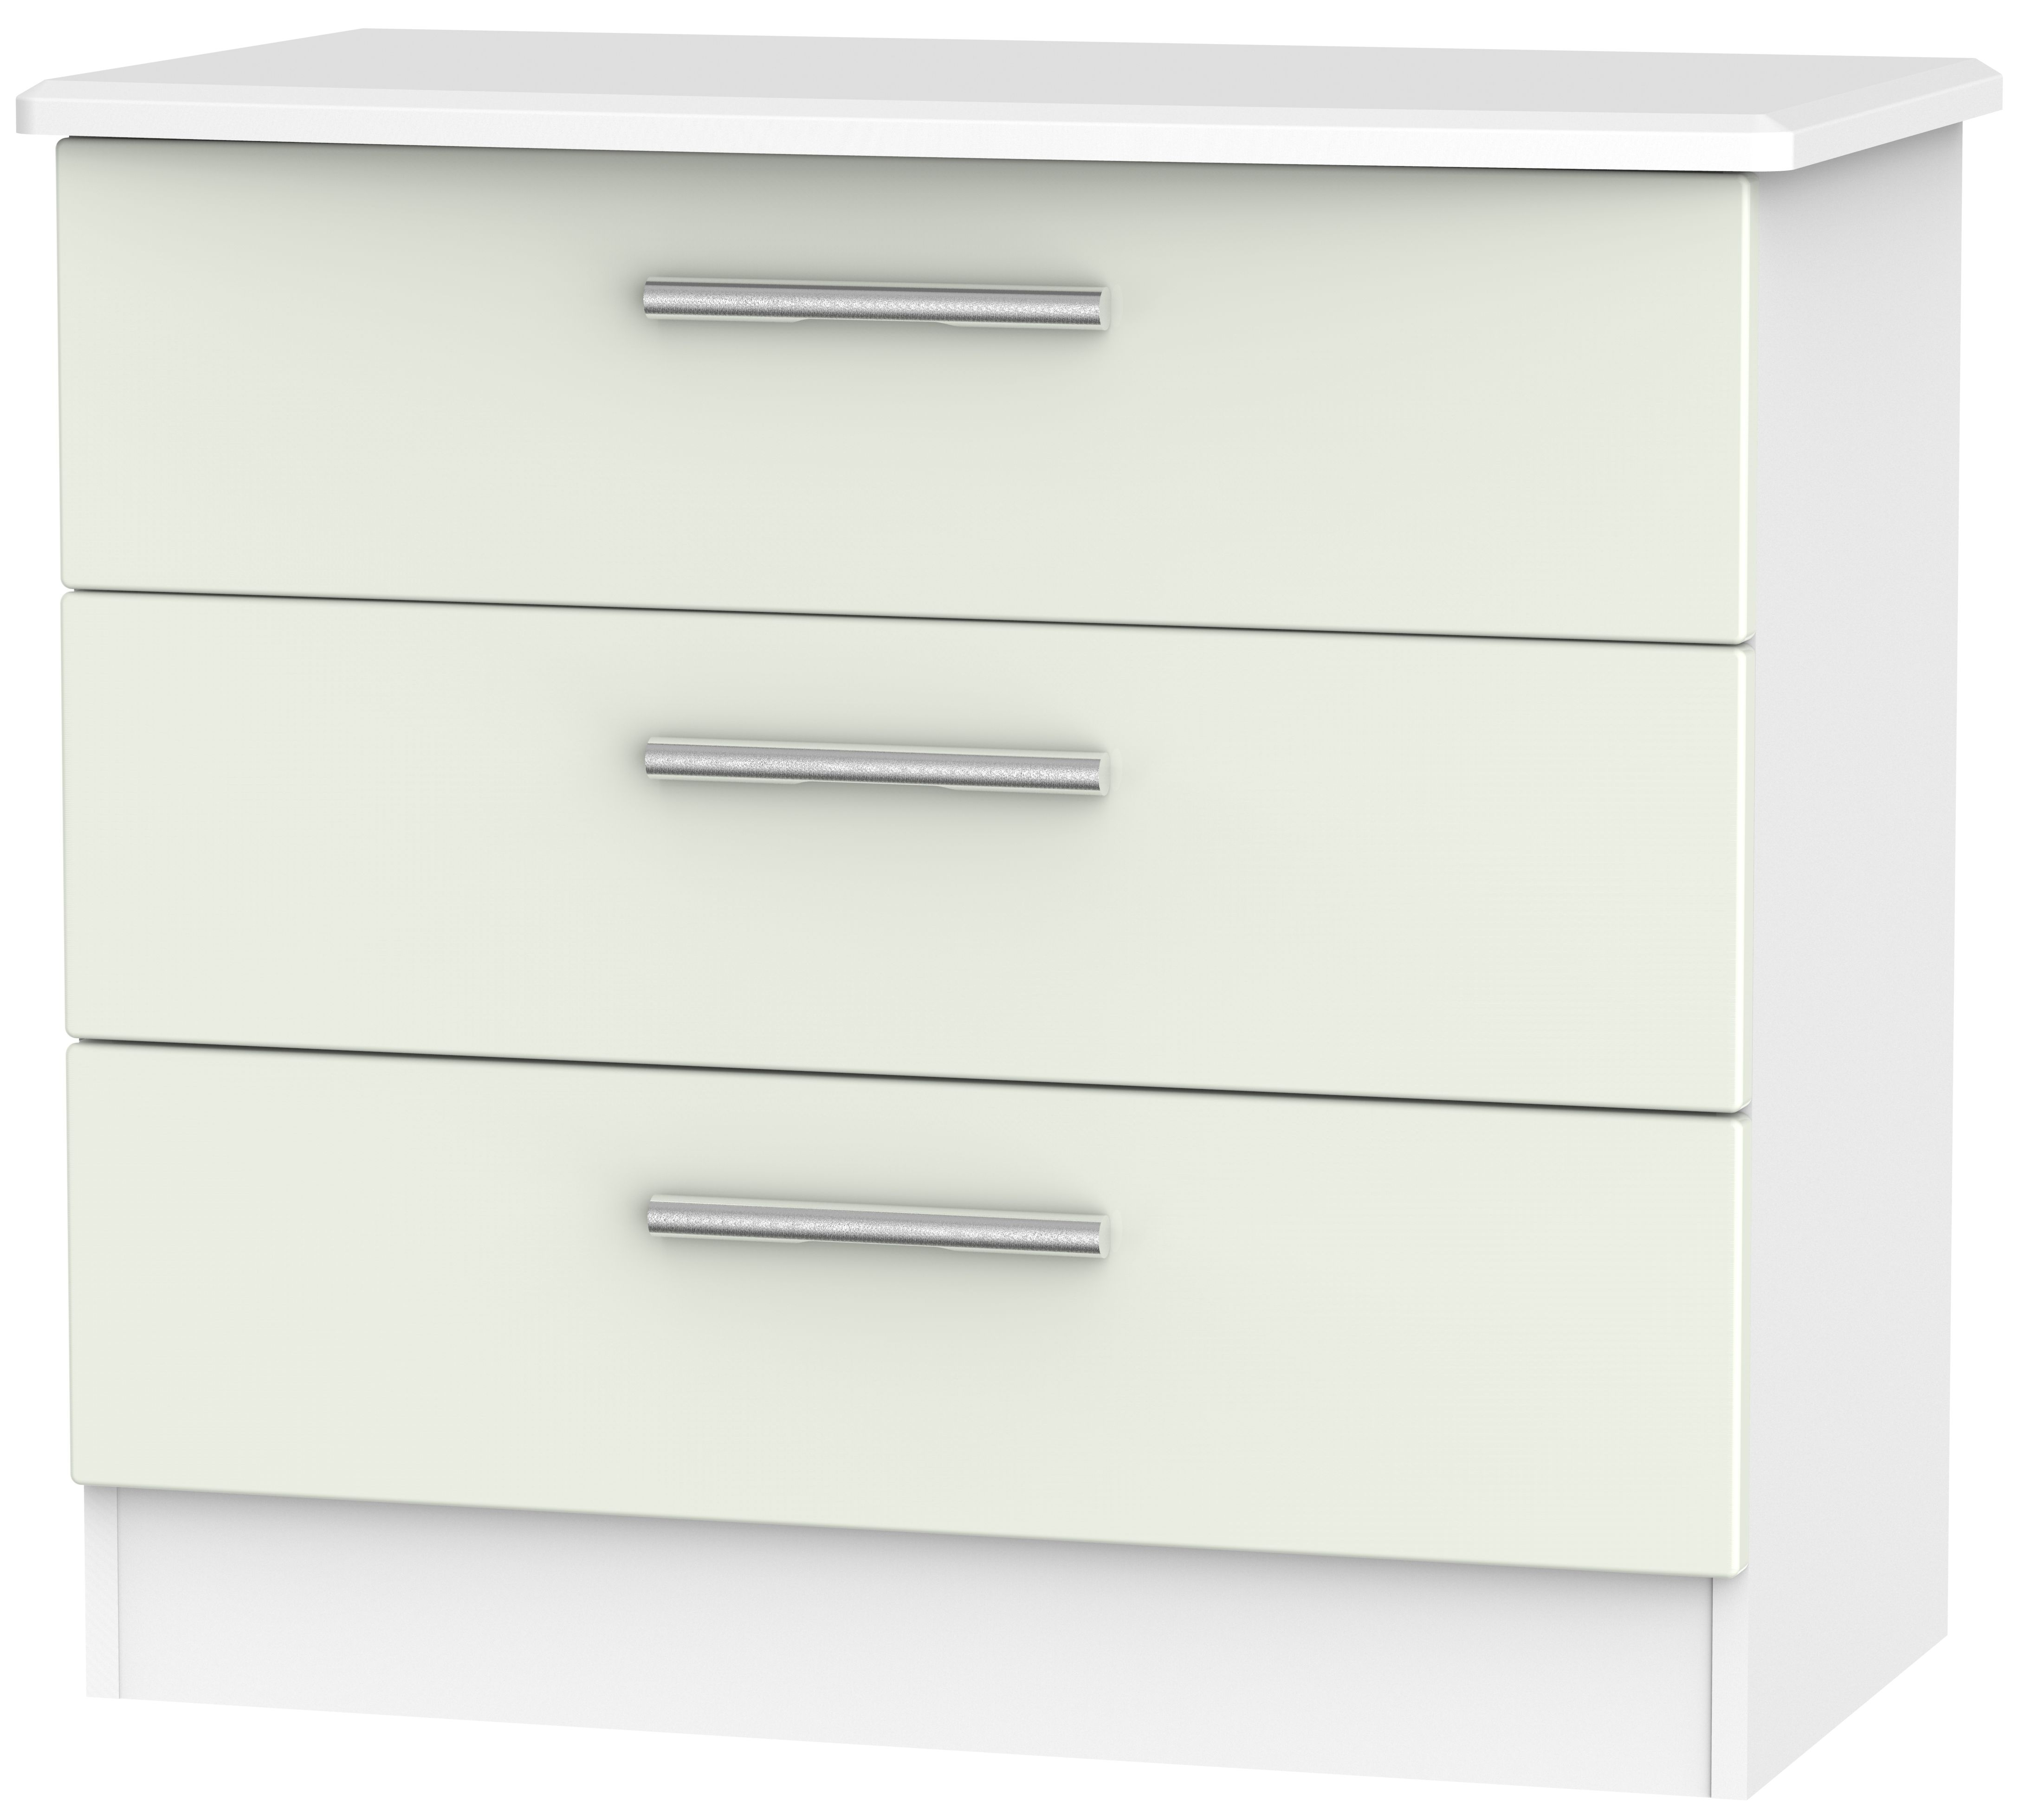 Knightsbridge 3 Drawer Chest - Kaschmir Matt and White